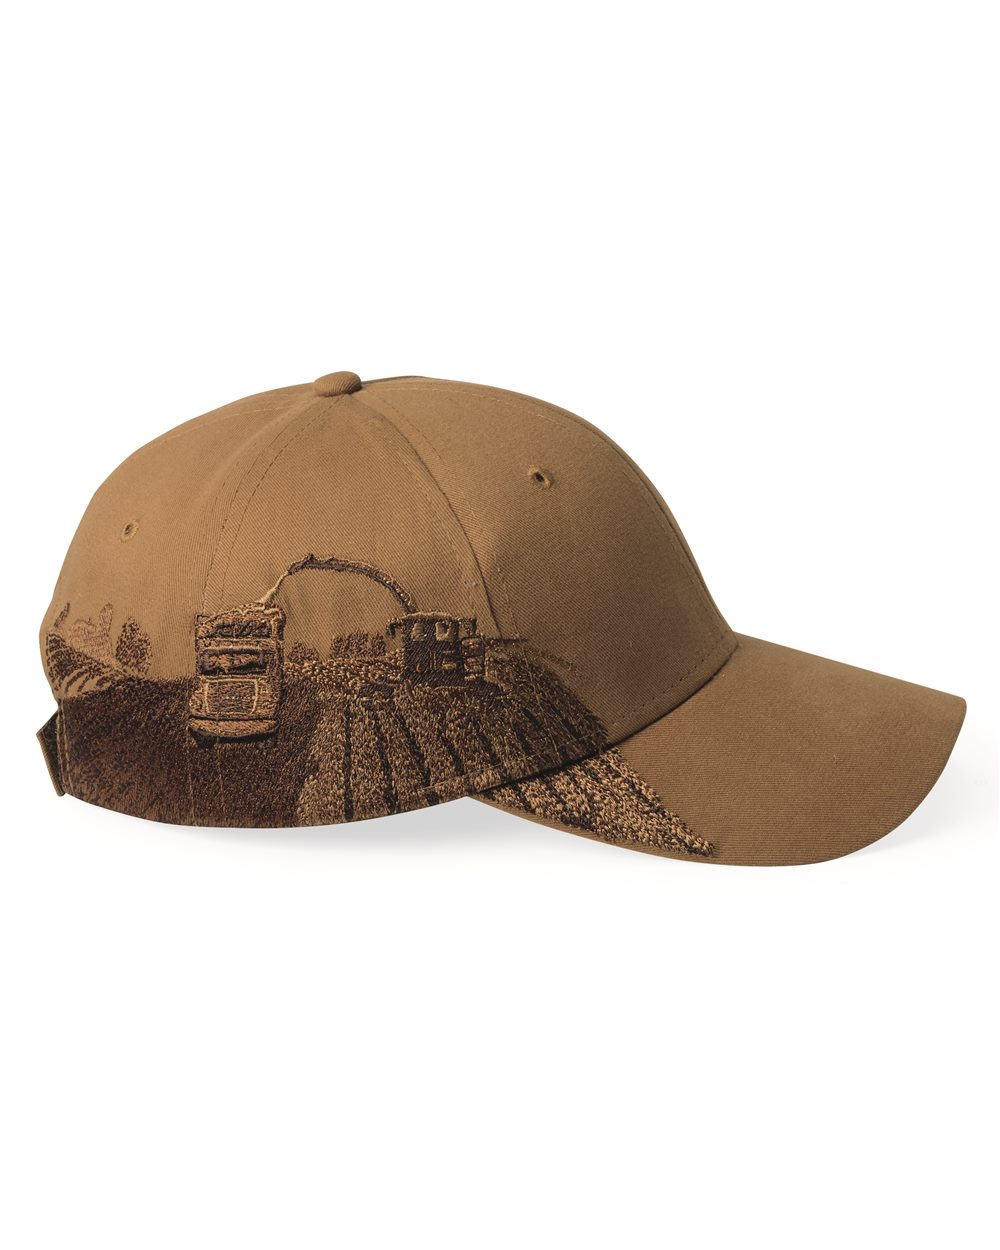 DRI DUCK 3351 - Harvesting Industry Cap